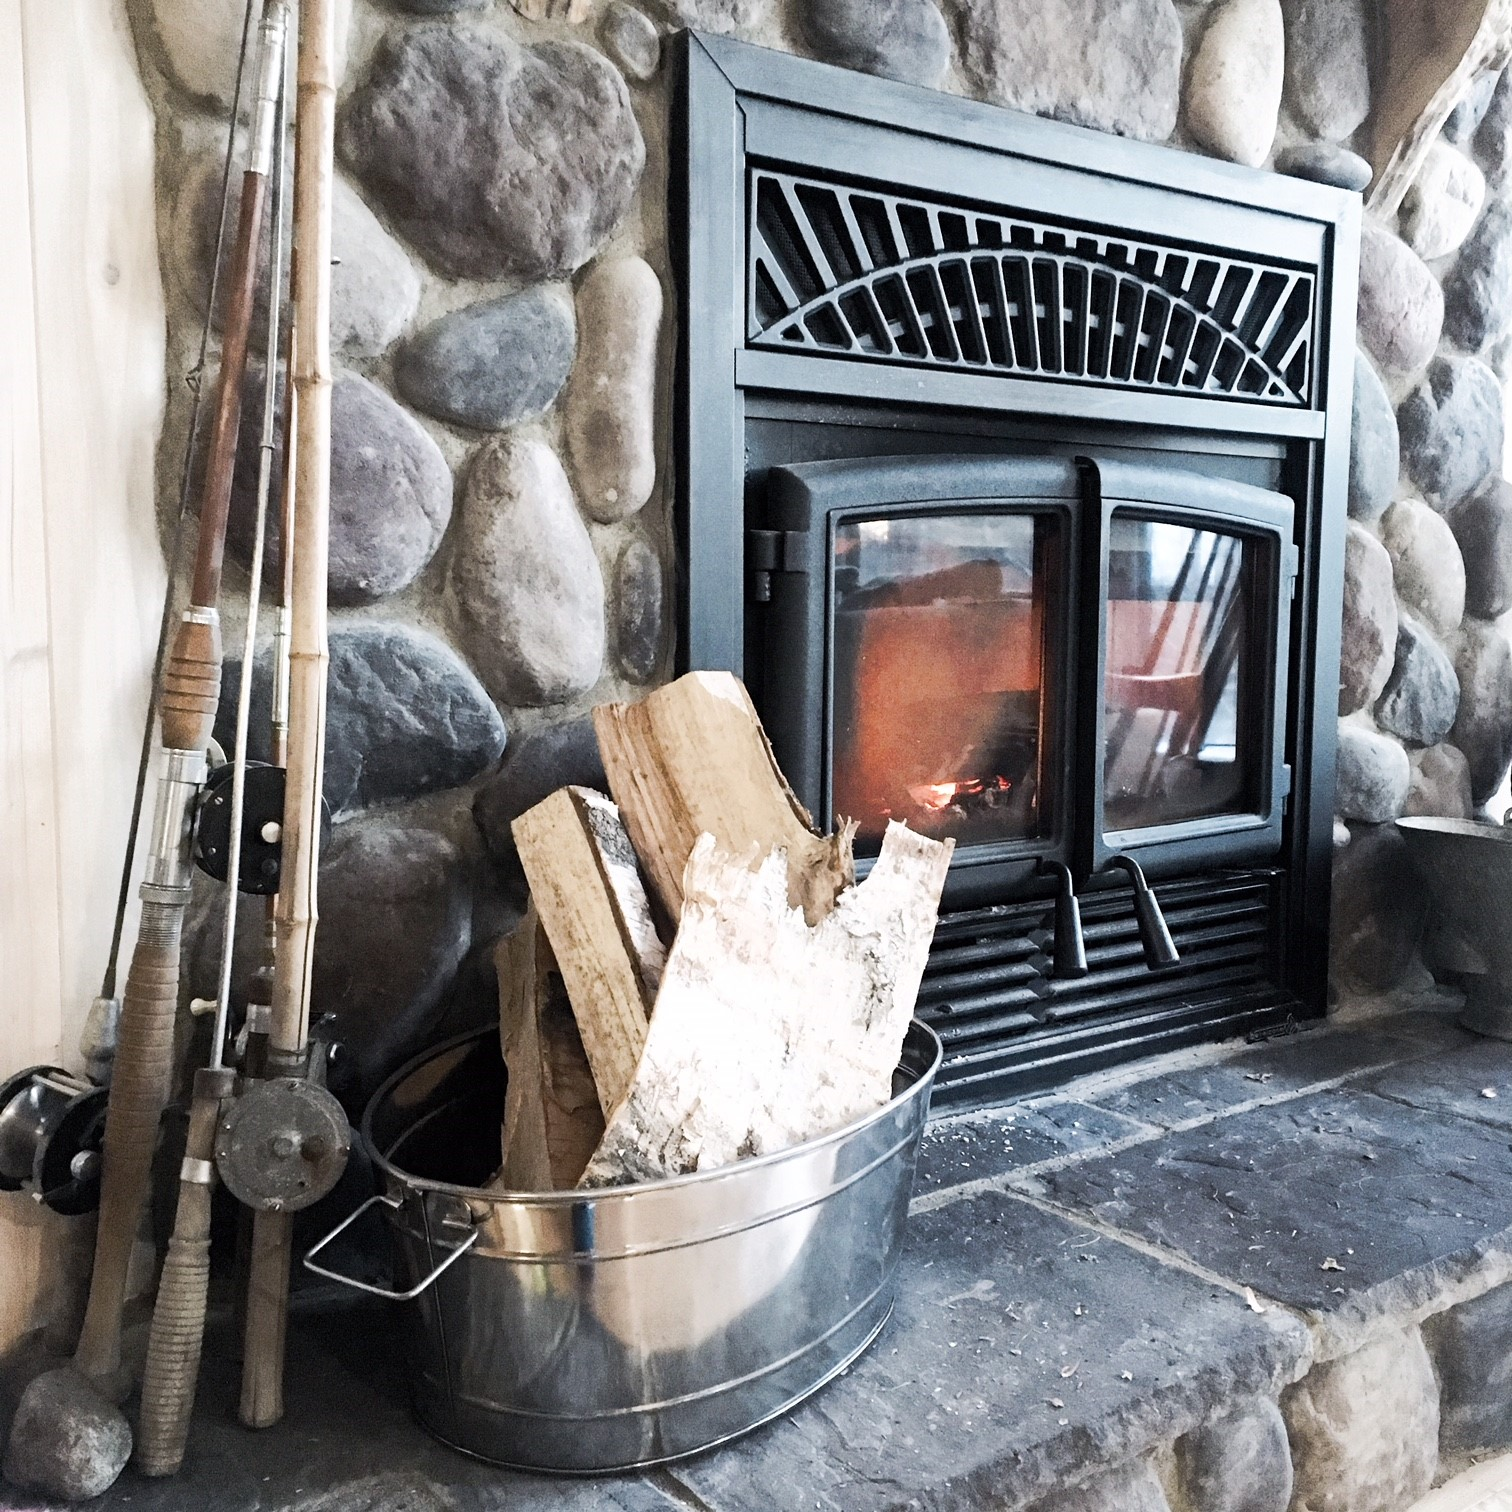 This fireplace didn't stop the entire weekend. Great ambiance along with that extra warmth the cabin needed